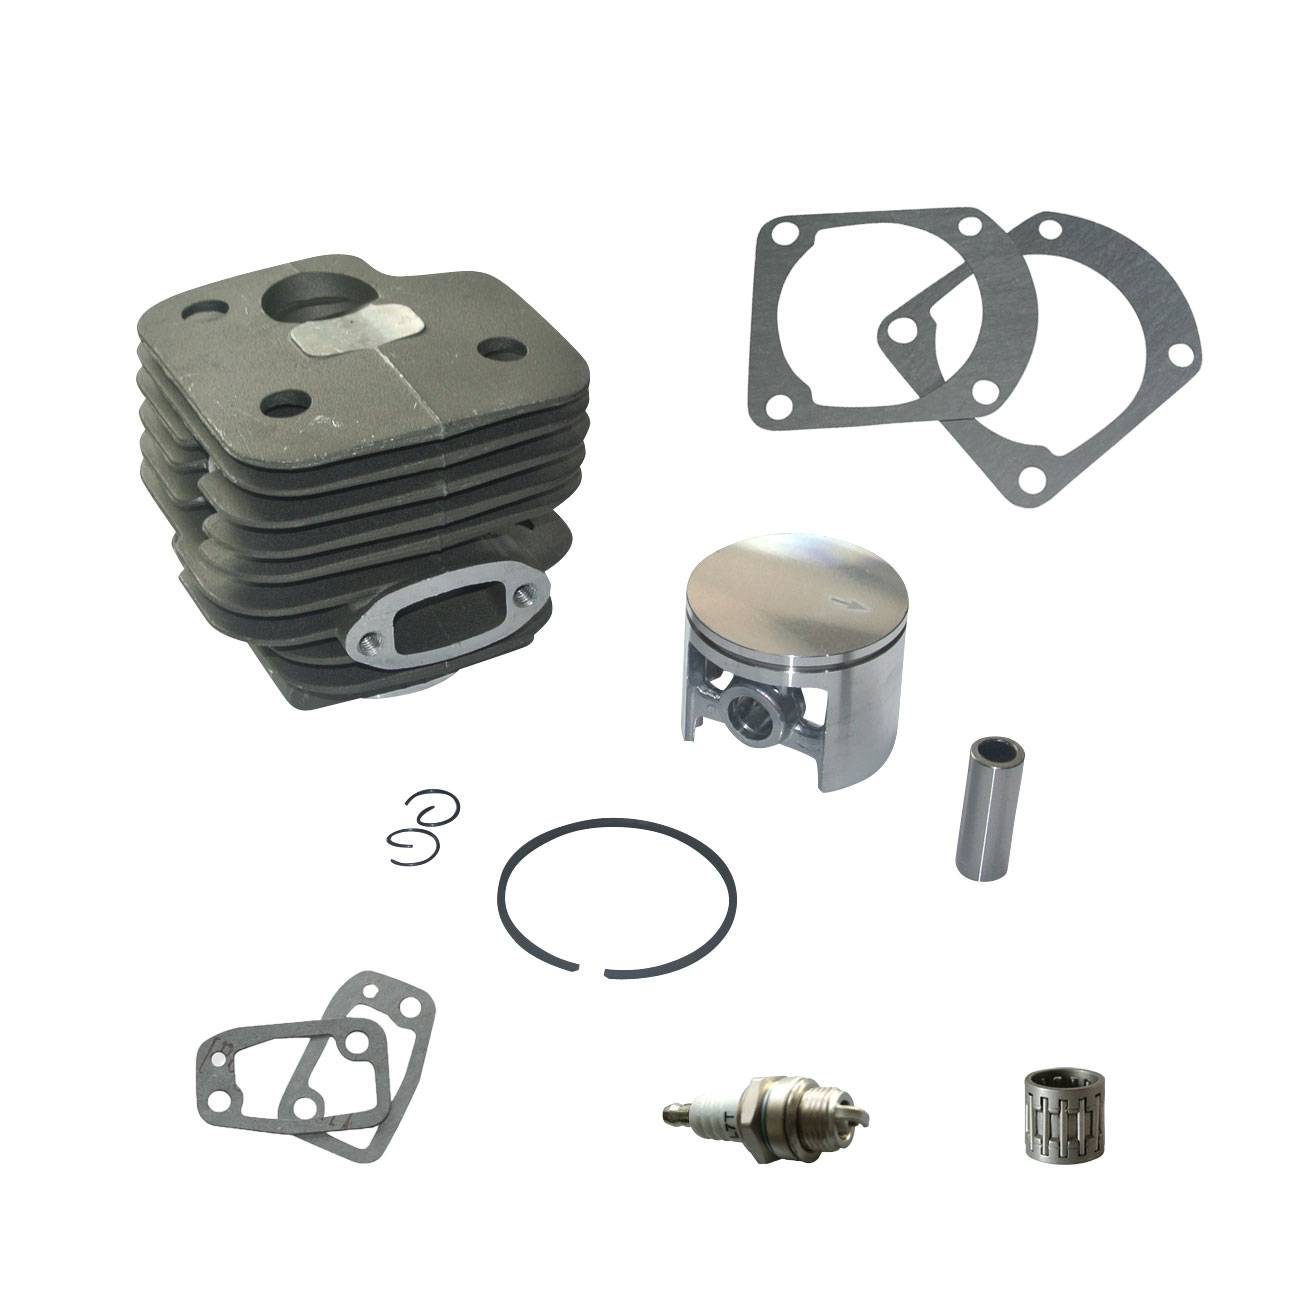 Cylinder Piston Gaskets Bearing Kit For Husqvarna 268 272  REP #501 laidong km4l23bt for tractor like luzhong series set of piston groups with gaskets kit including the cylinder head gasket